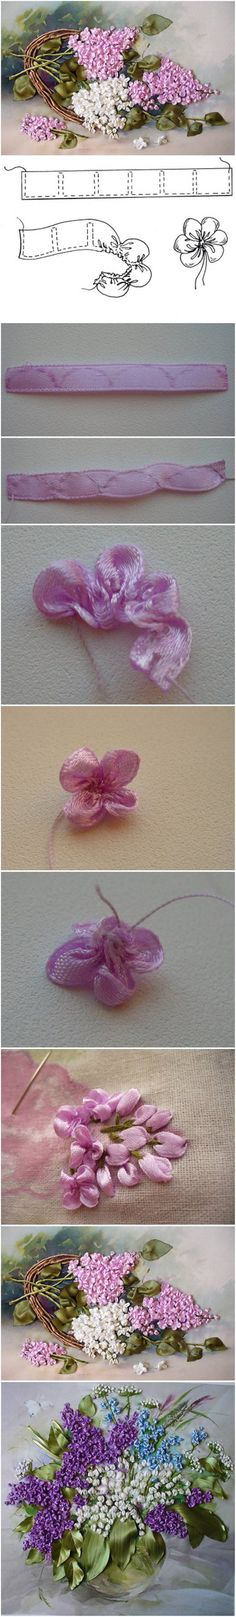 How to Make Embroidery Ribbon Lilac Flowers                                                                                                                                                                                 More